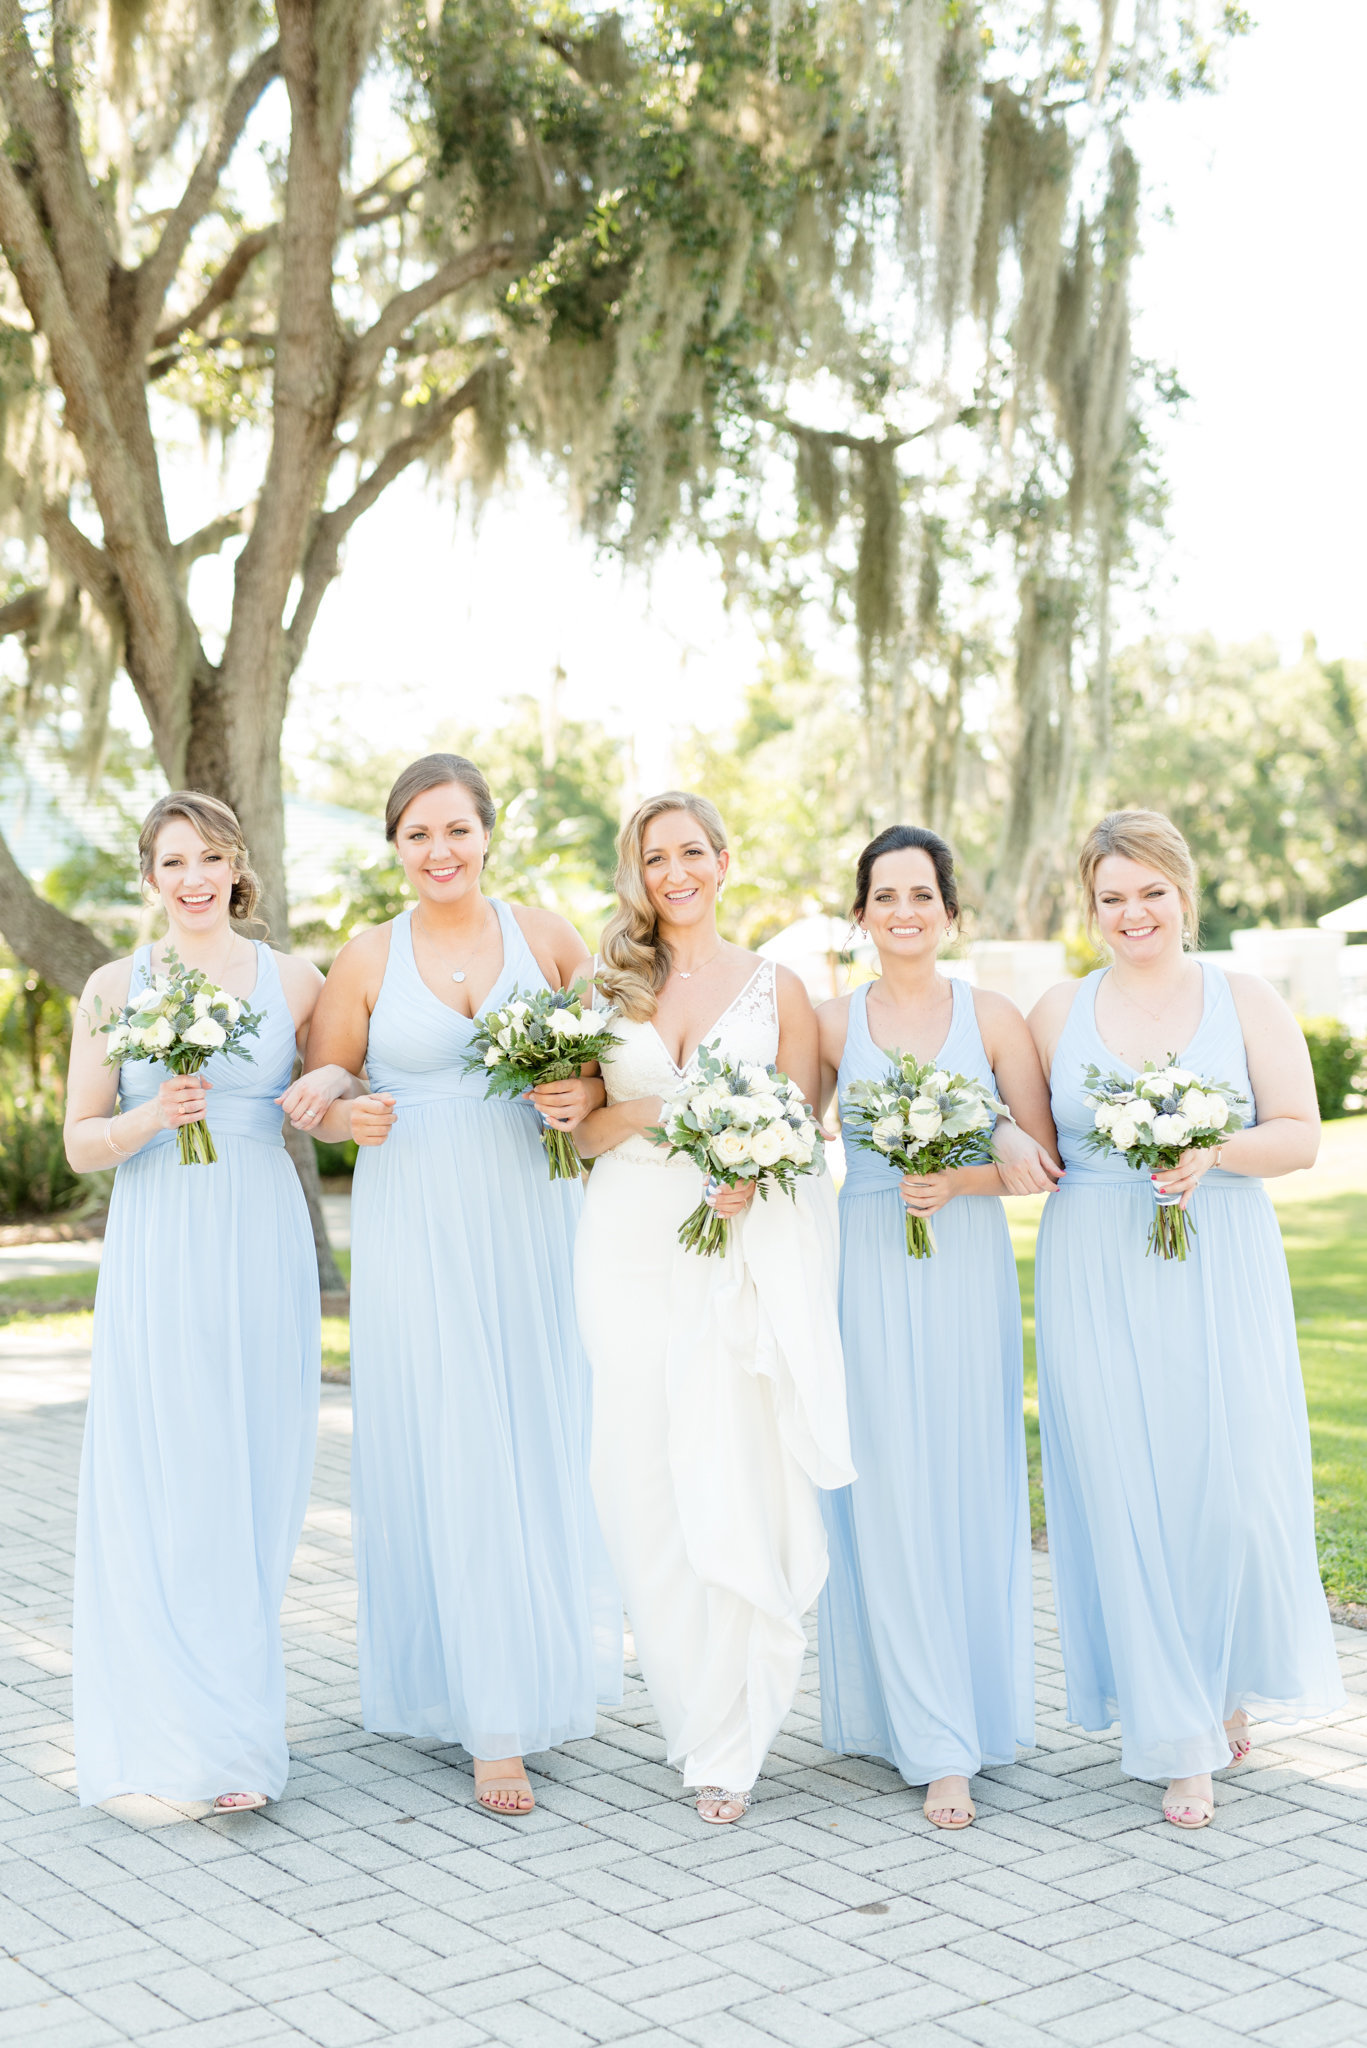 Dusty-Blue-and-Gold-Wedding-Photography 0010